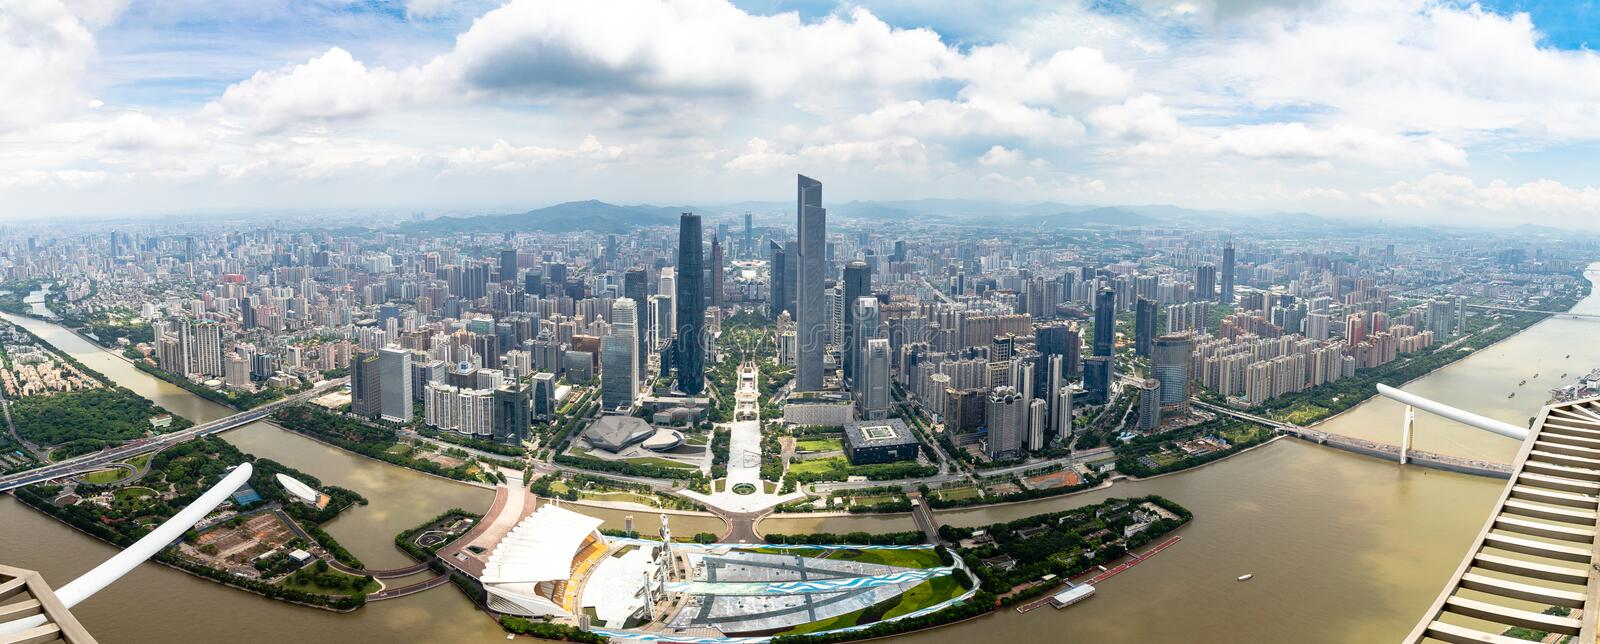 Juillet 2017 vue panoramique d'†de la Chine d'†« Guangzhou, « du district des affaires central de Guangzhou et du Pearl River photographie stock libre de droits